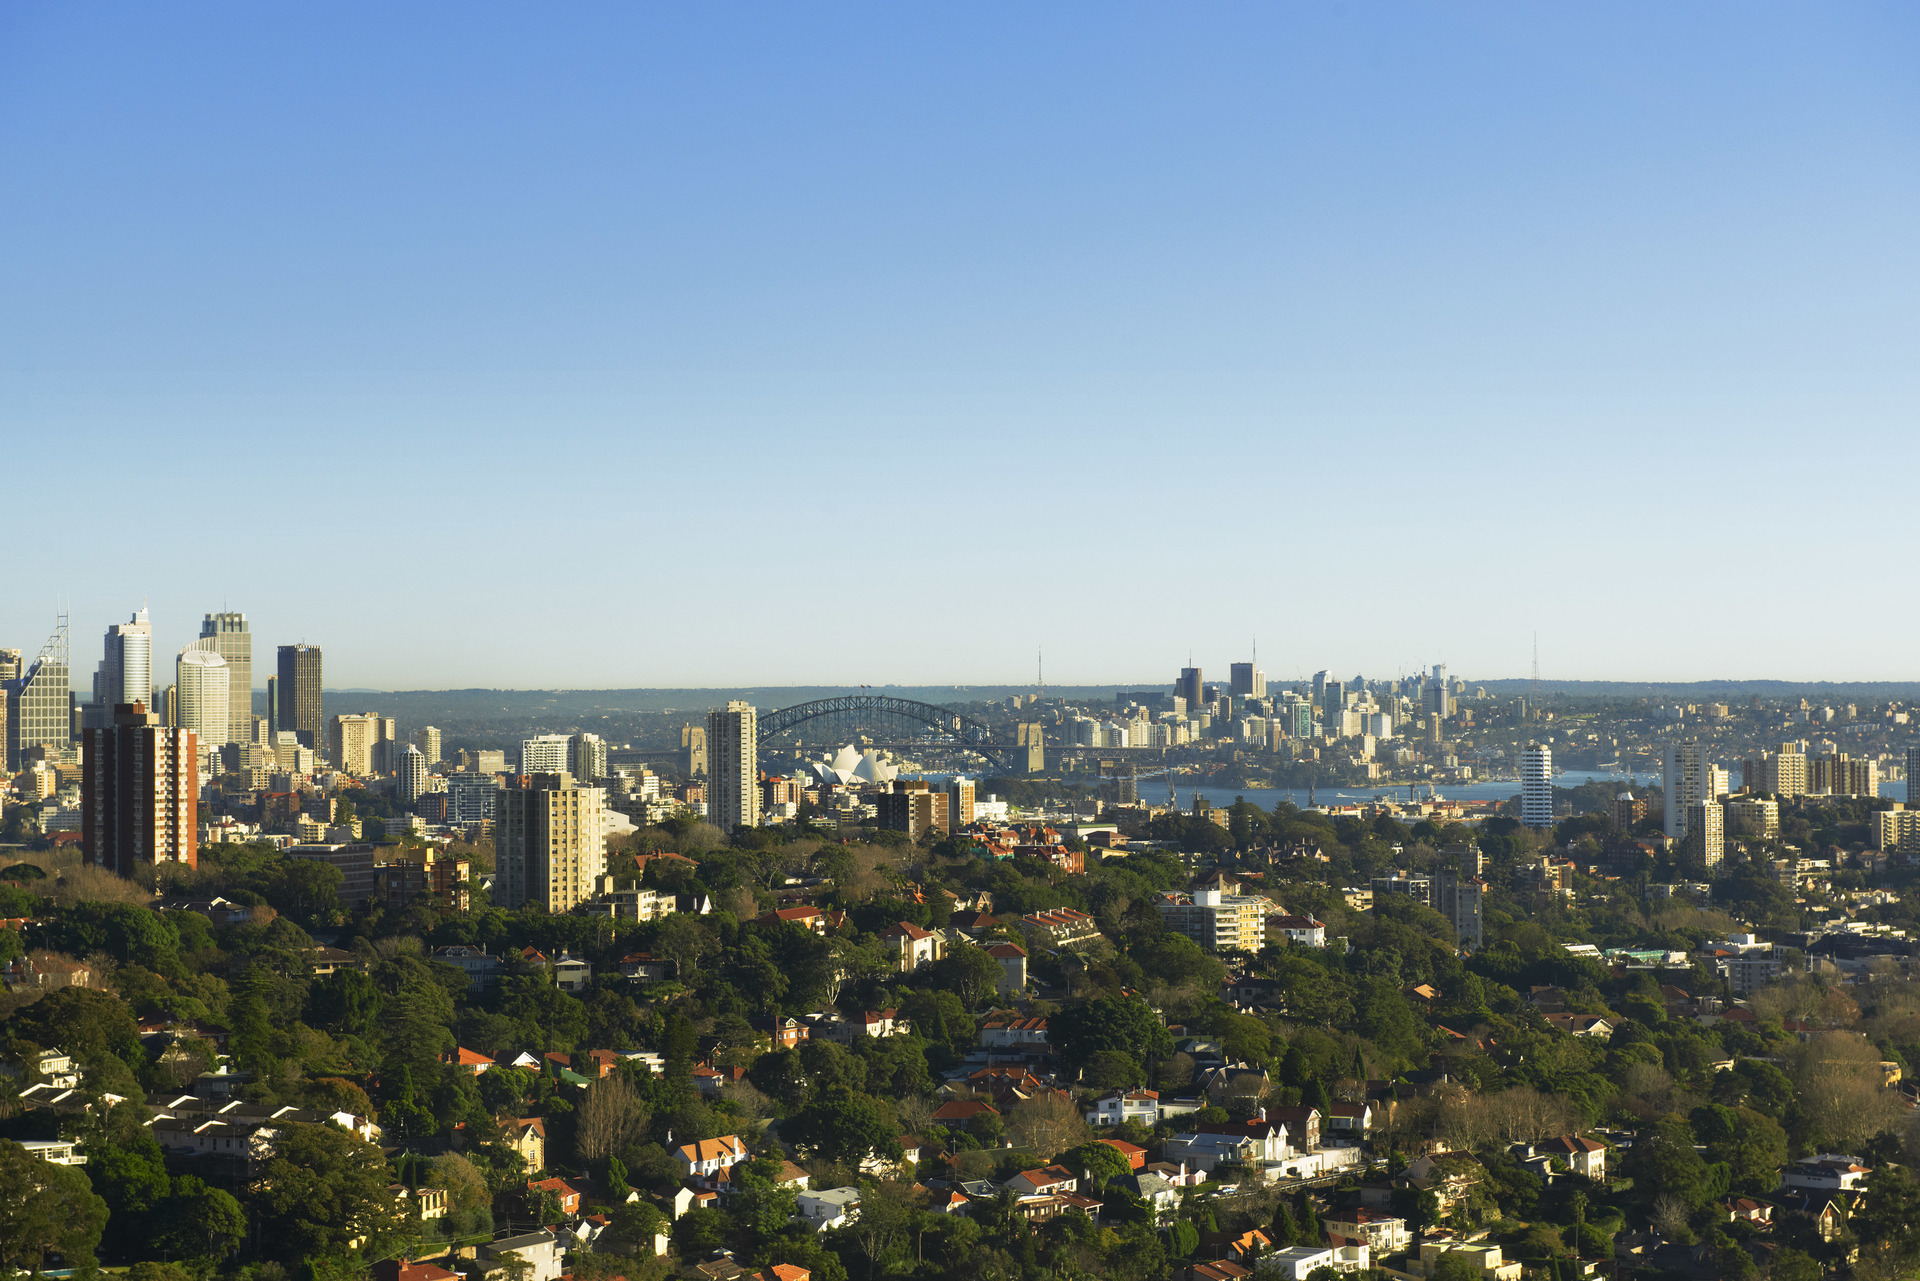 DISPLAY YOUR BUSINESS AT WESTFIELD TOWER TWO OFFICES AVAILABLE IN BONDI JUNCTION